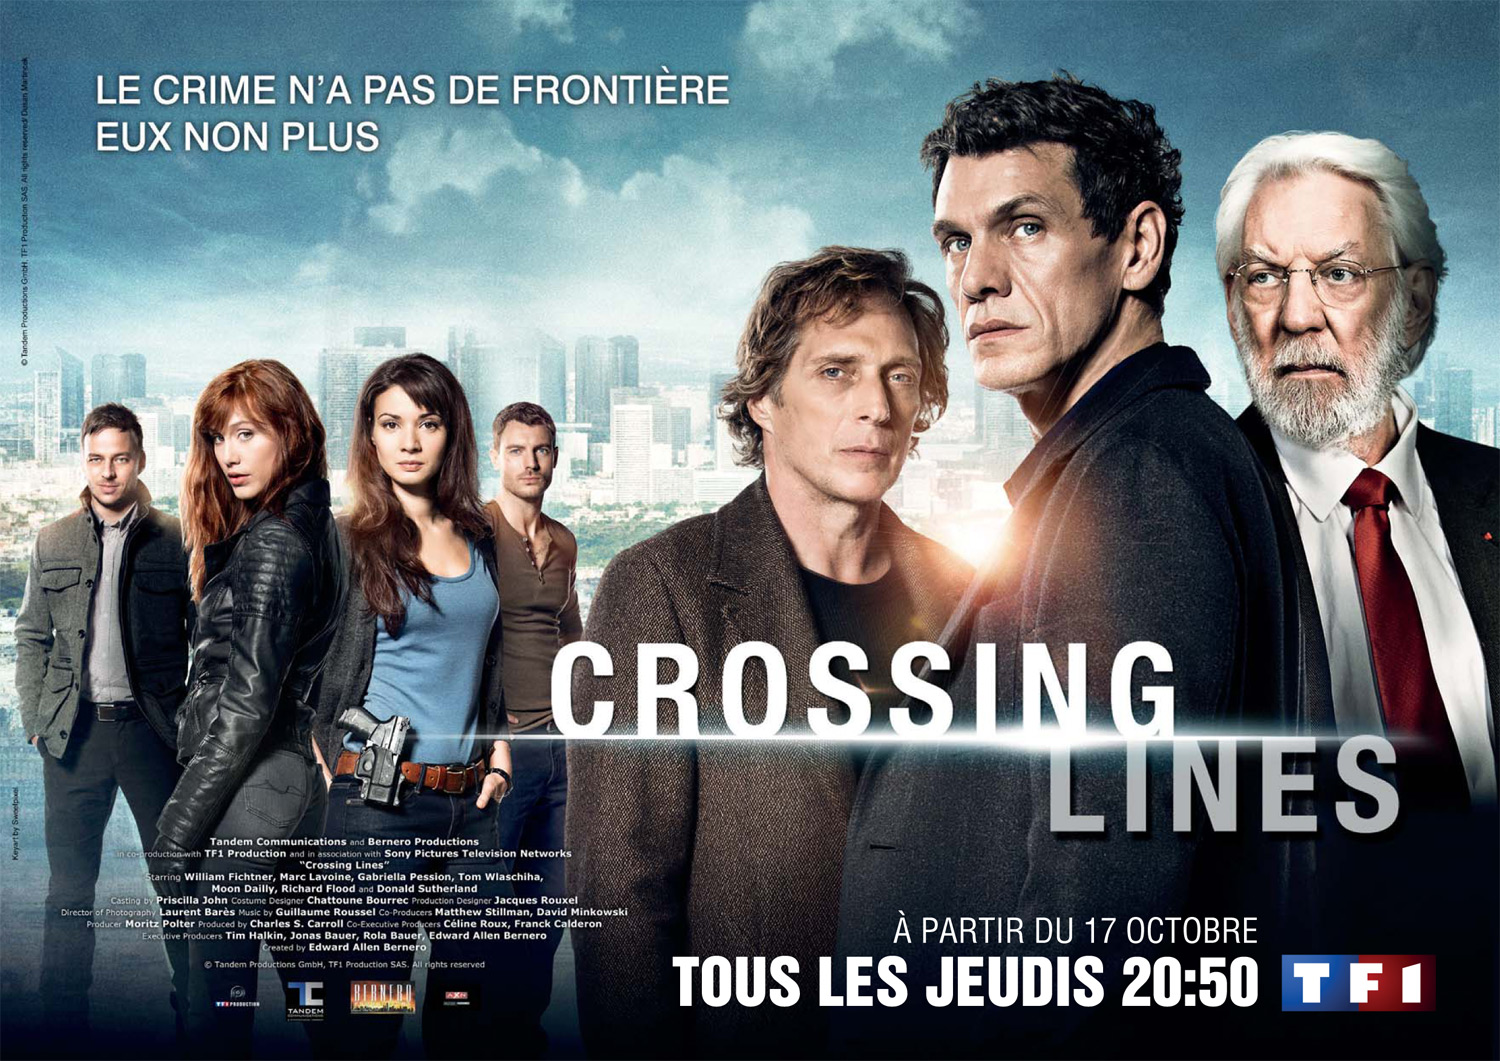 Crossed The Line Quotes: Crossing Lines Images Crossing Lines Poster HD Wallpaper